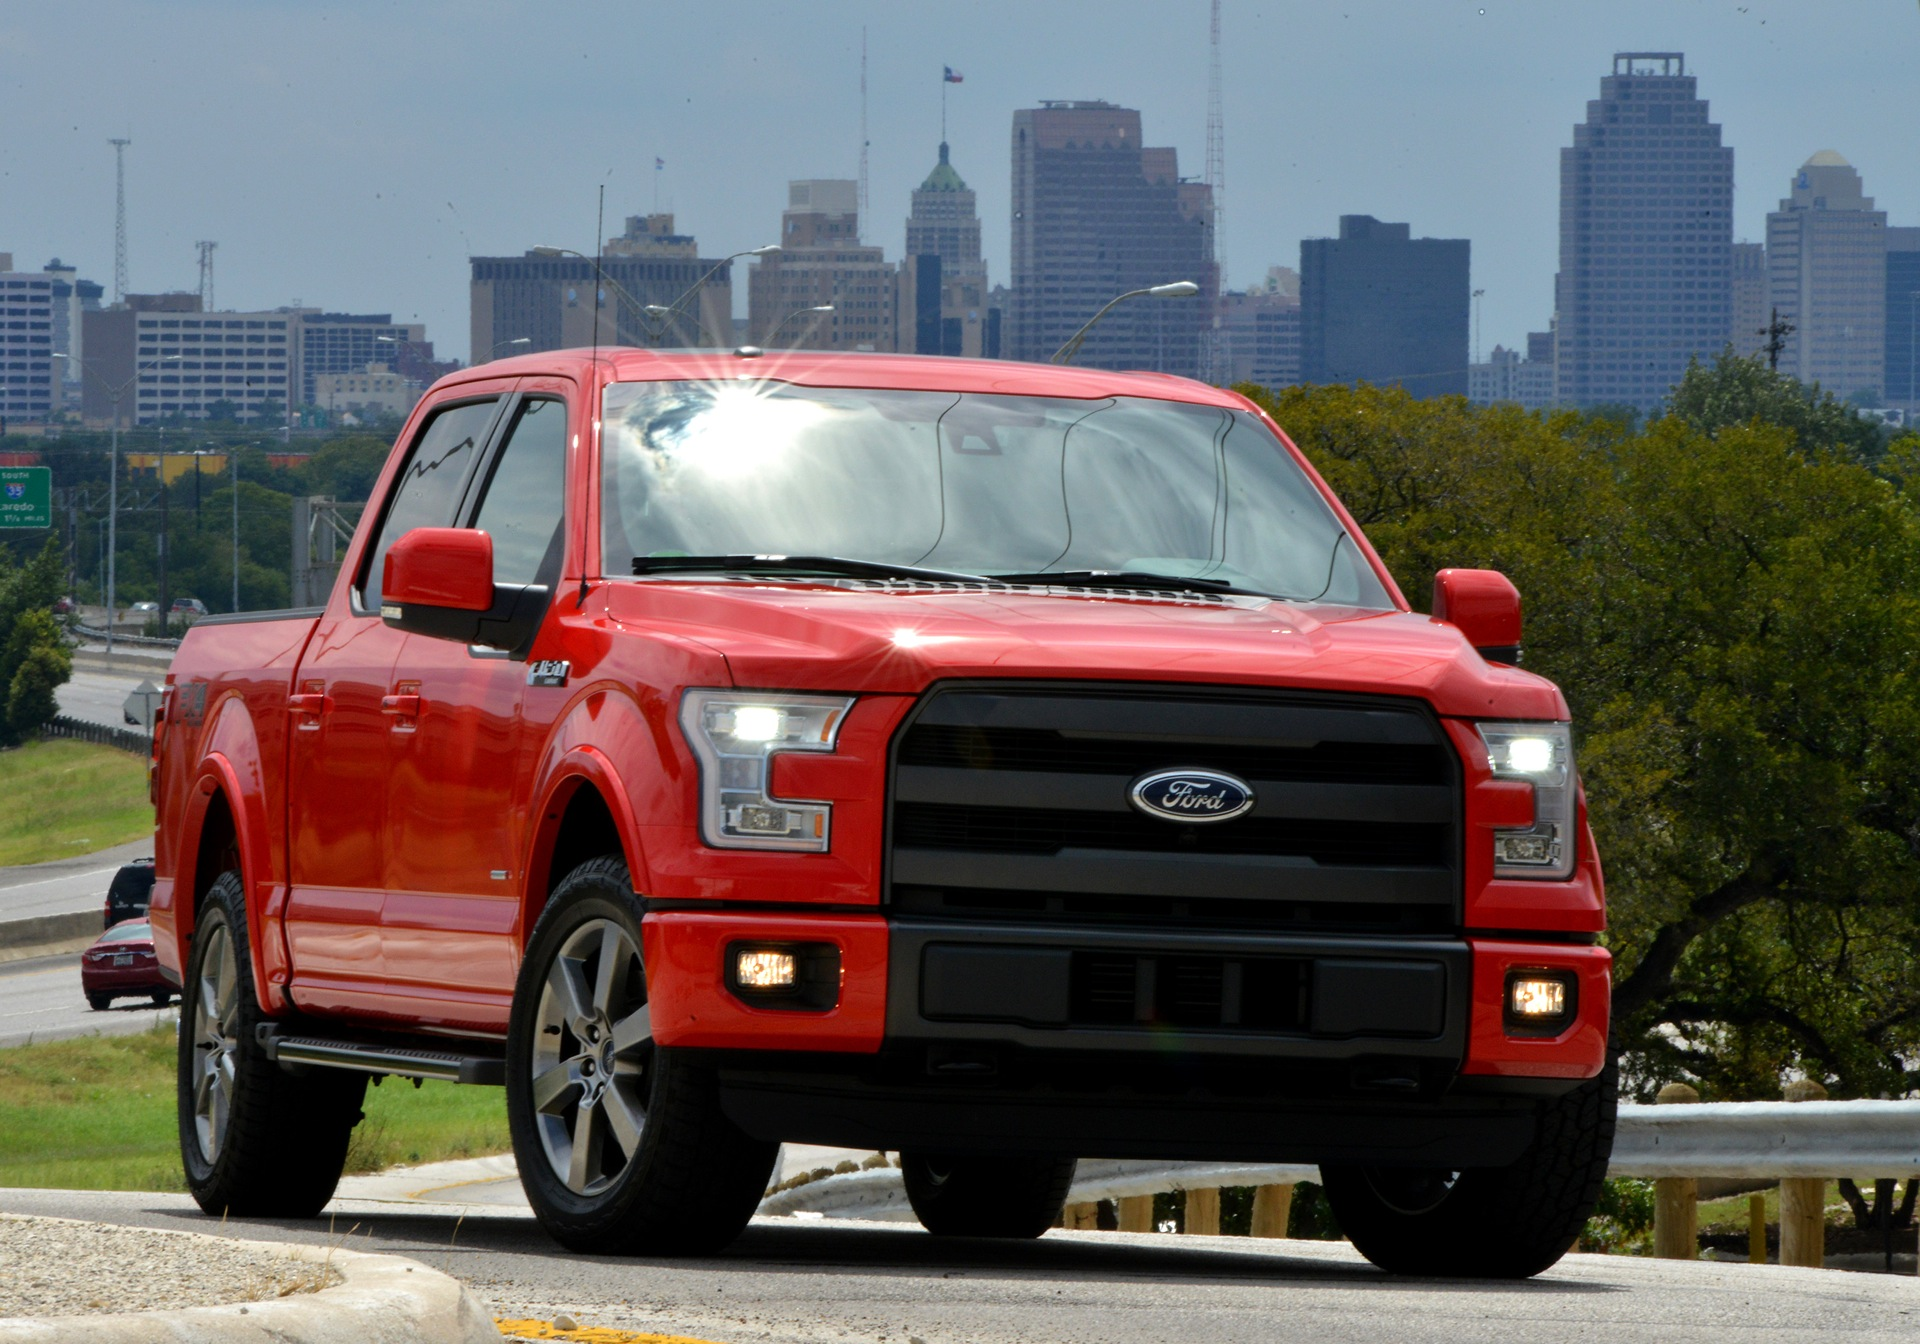 ford f 150 hybrid pickup truck by 2020 reconfirmed but diesel too. Black Bedroom Furniture Sets. Home Design Ideas